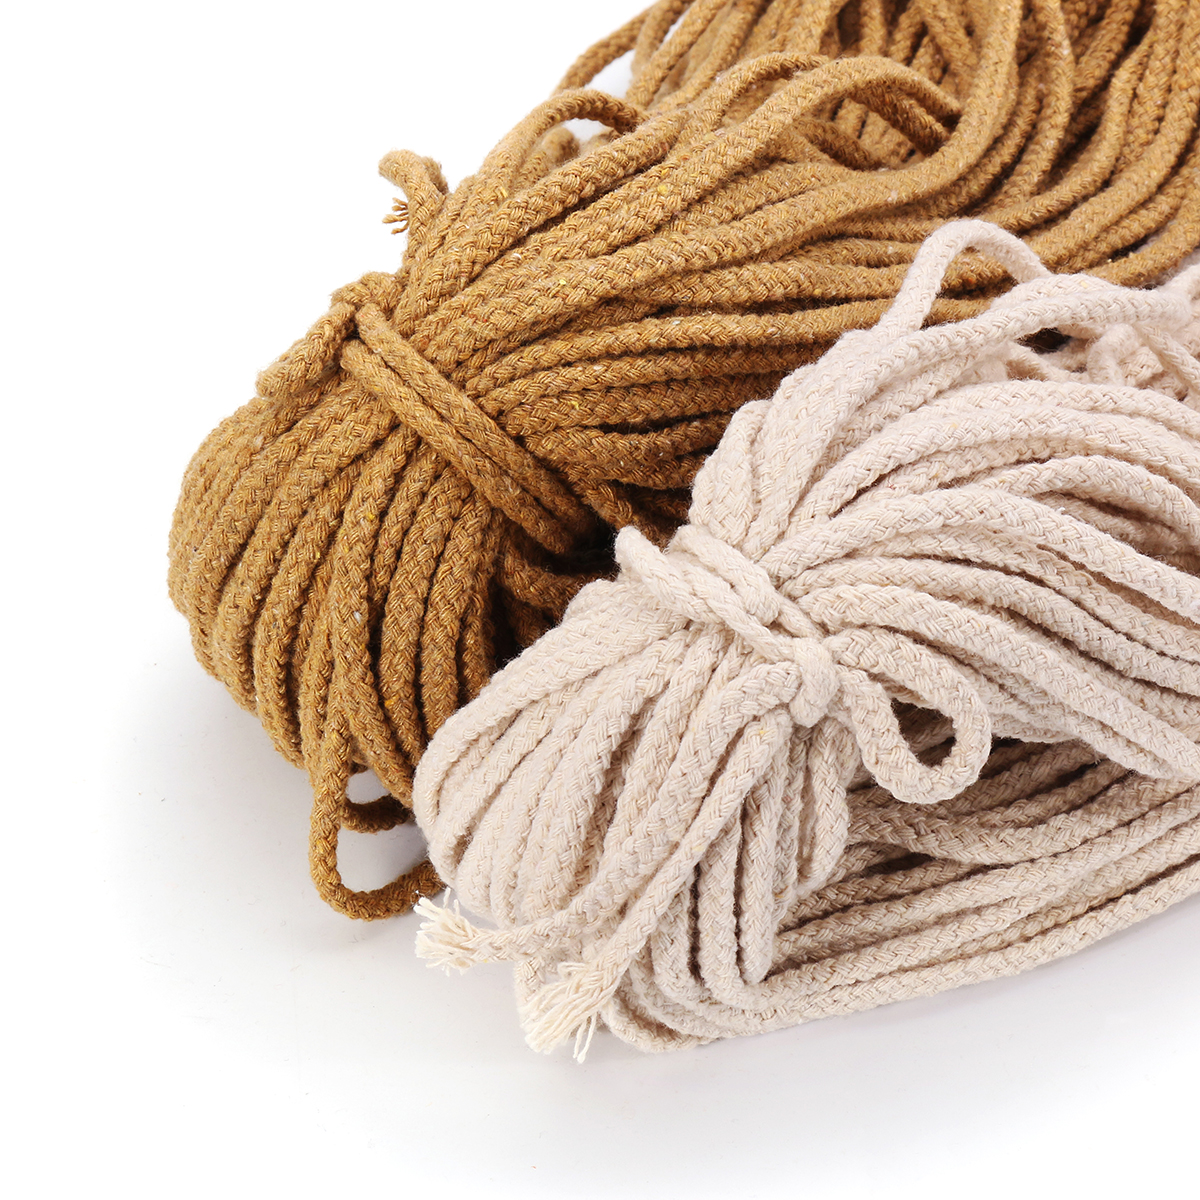 8 Strands Braided Wire Natural Cotton Flower Pot Holder Hanging Rope Twisted Cord DIY Macrame String